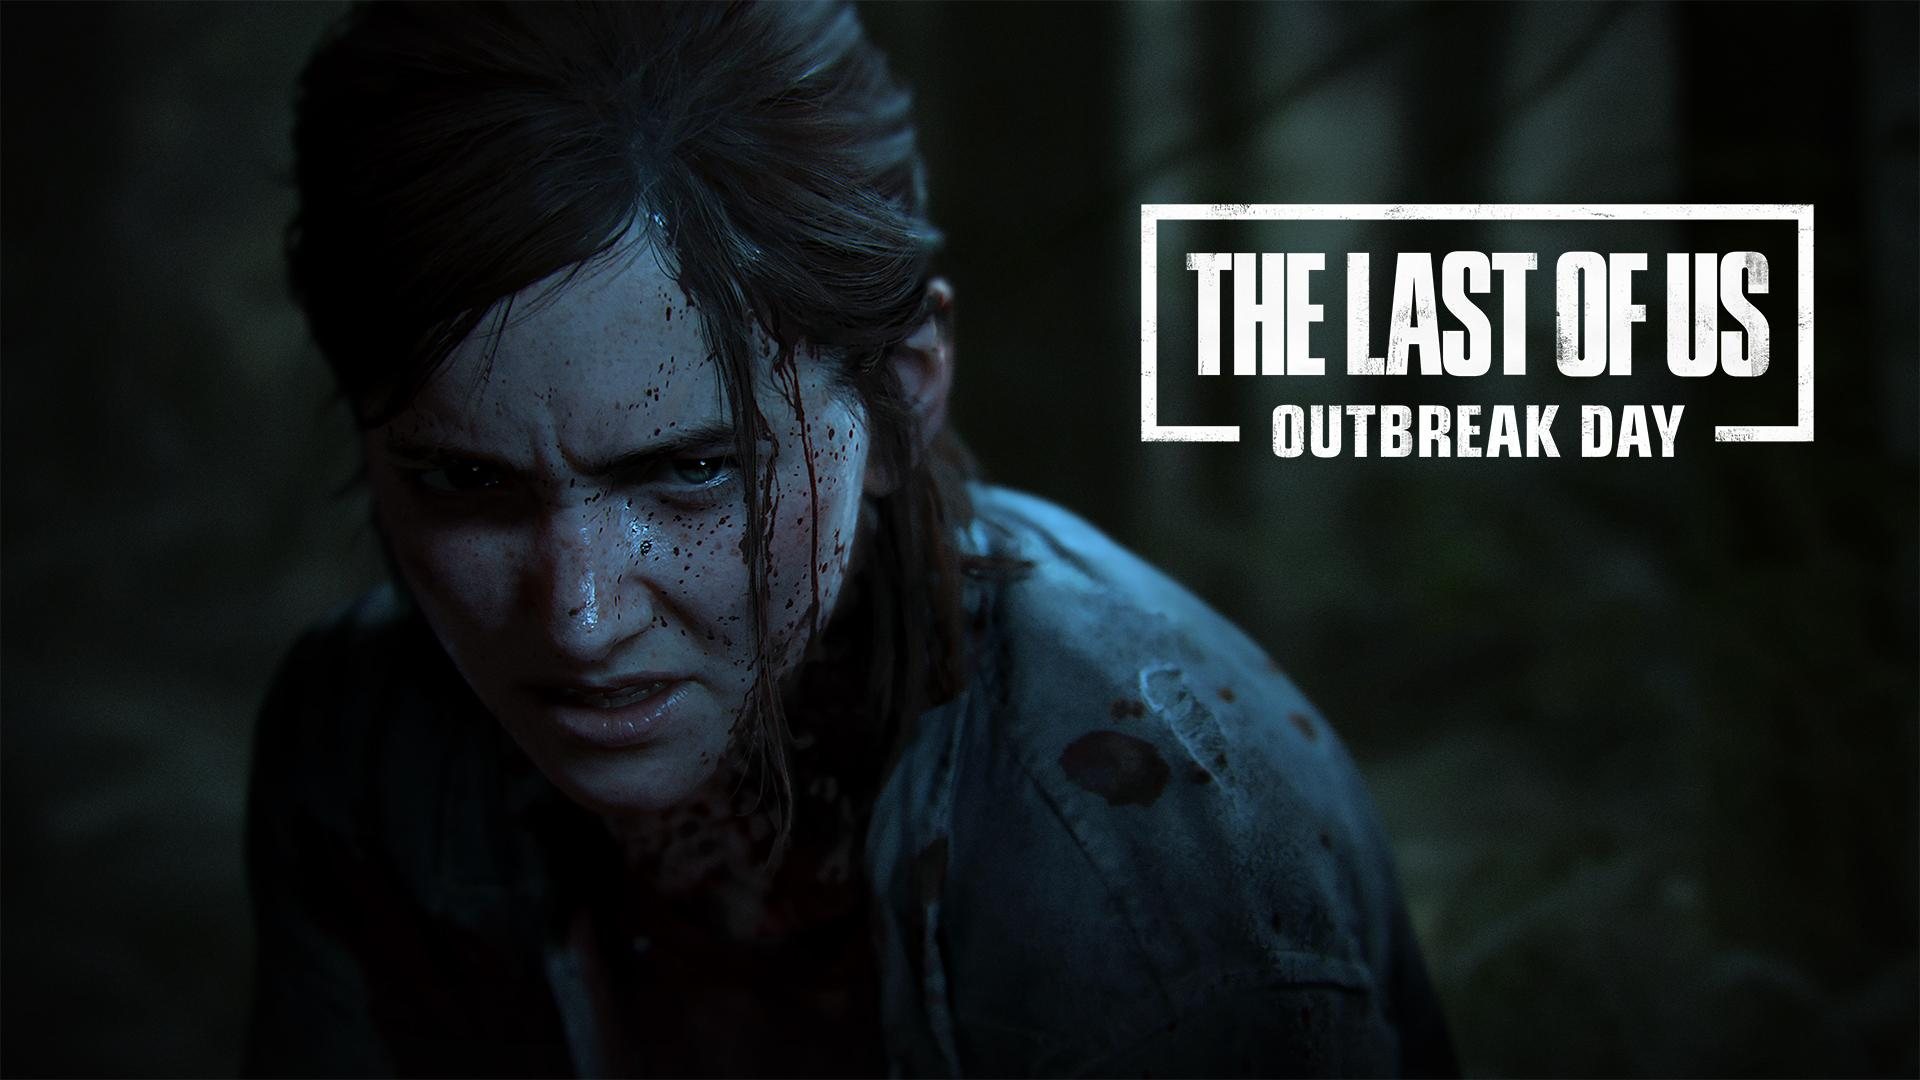 The Last of Us Part 2 Gets A New Screenshot For Outbreak Day